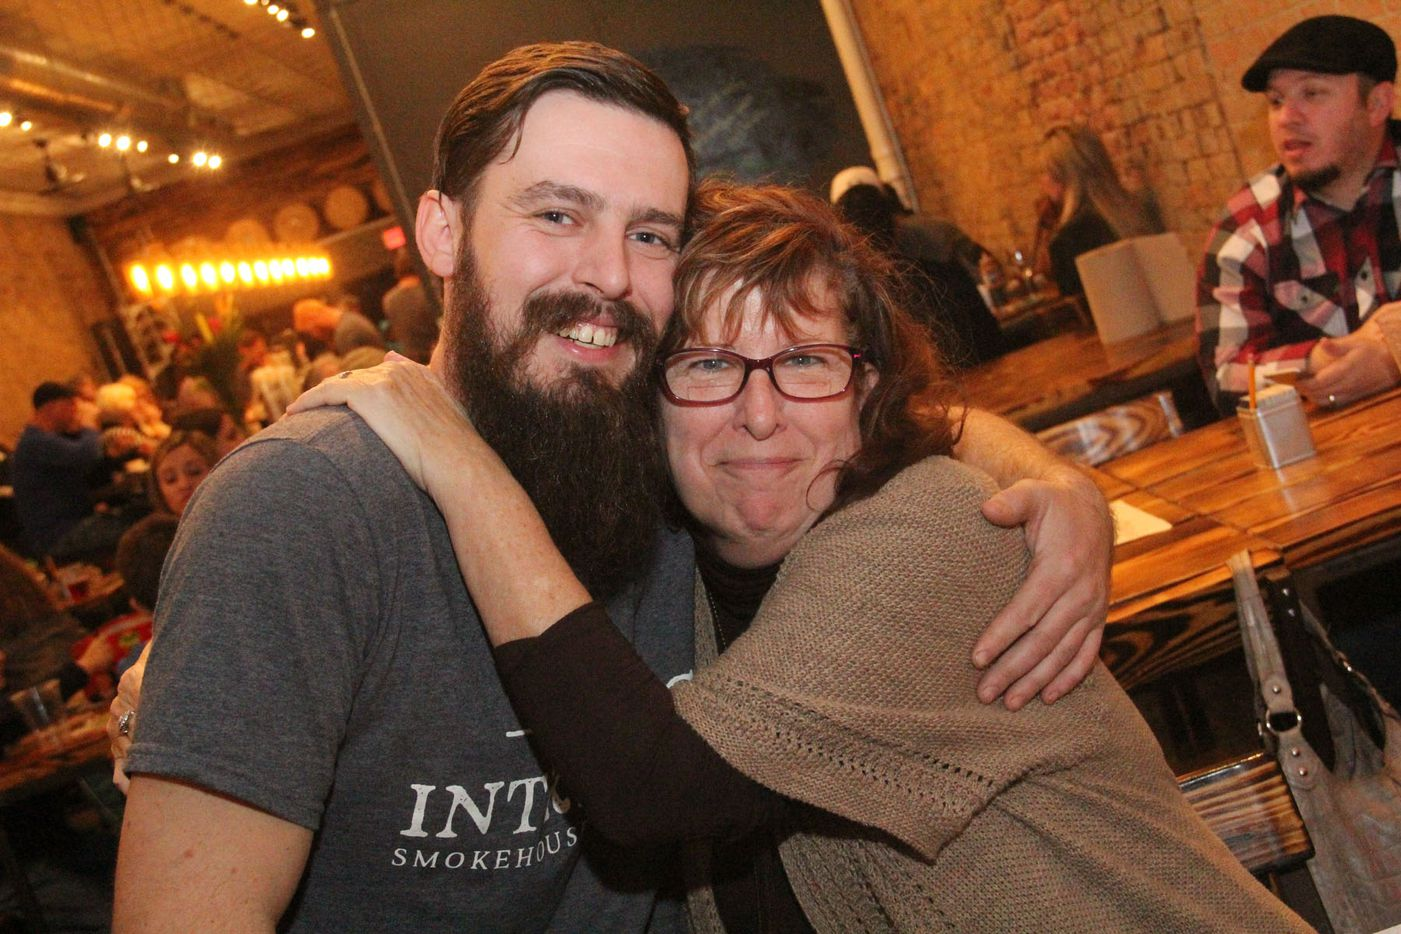 Intrinsic Smokehouse and Brewery owner Cary Hodson and his mother at the brewpub's grand opening on December 5, 2015.